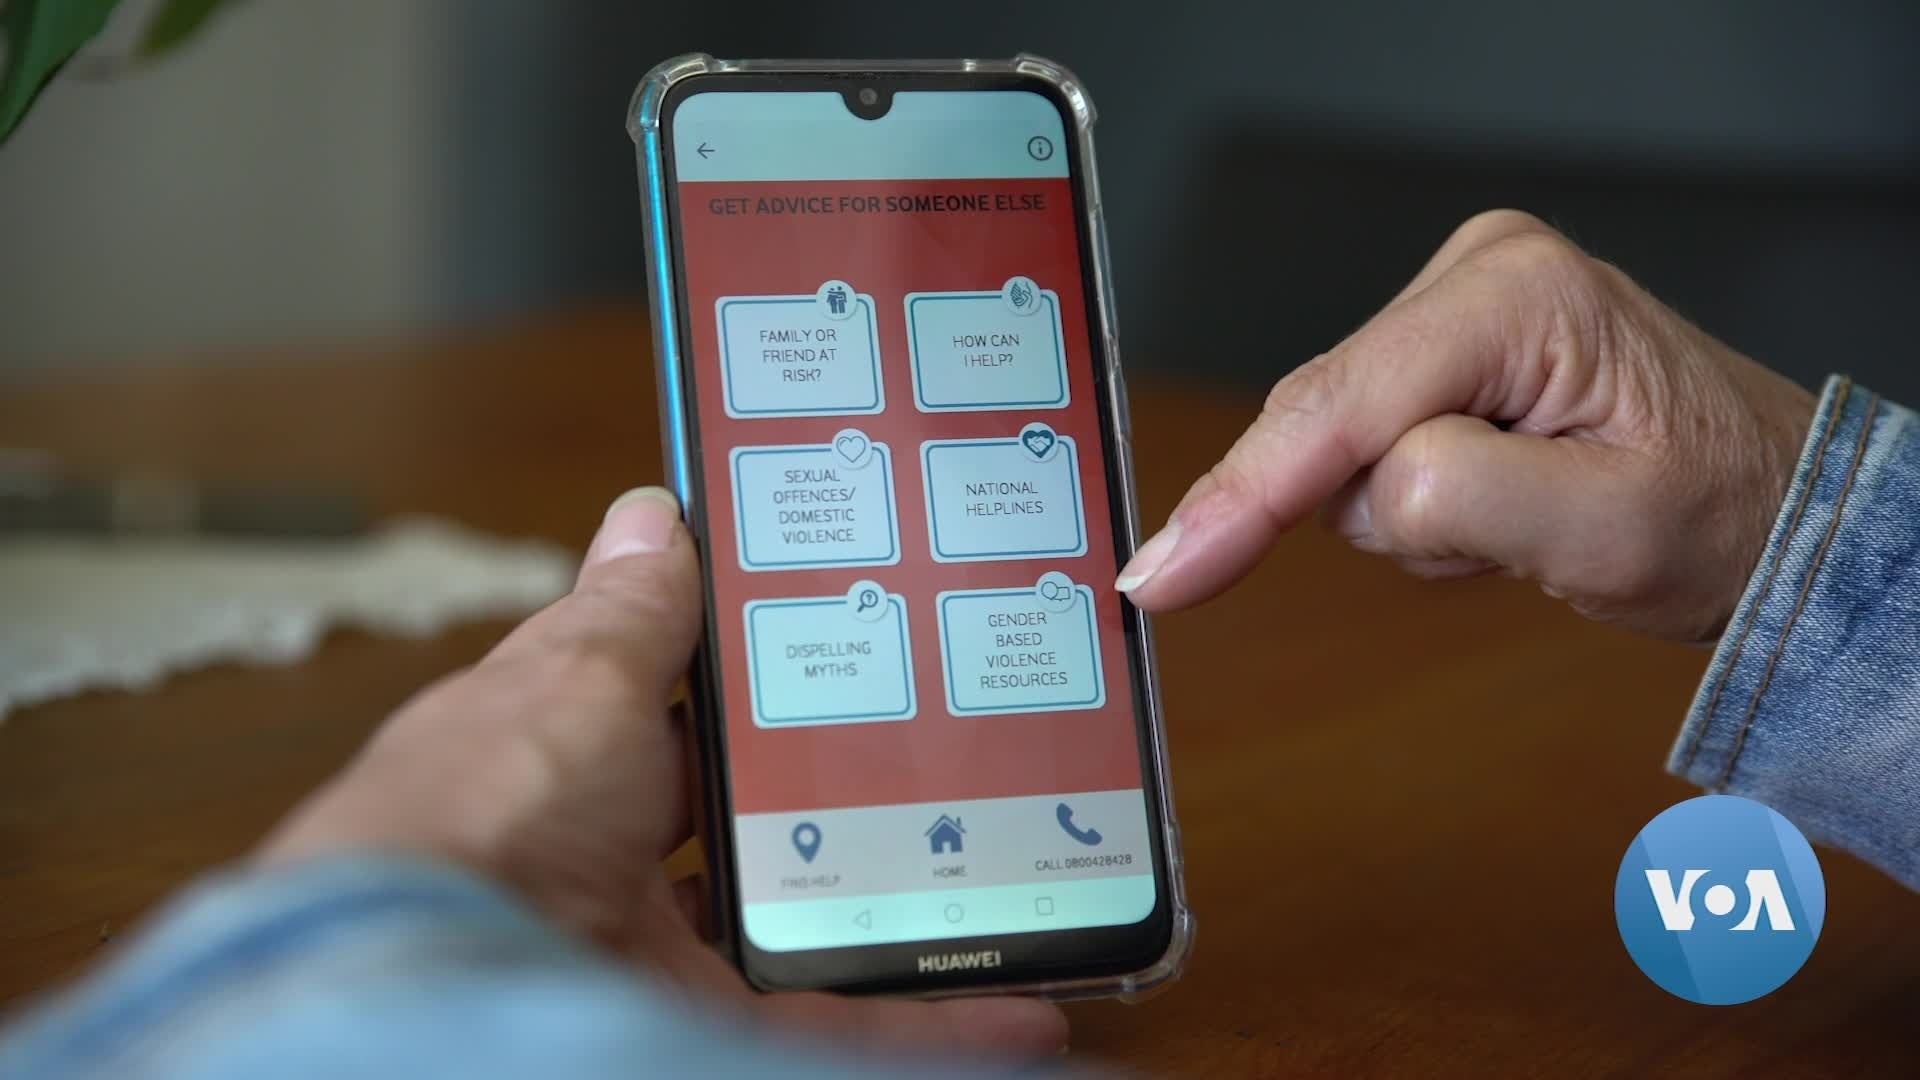 Read more about the article South African Telecom App Helps Gender-BasedViolence Survivors   Voice of America